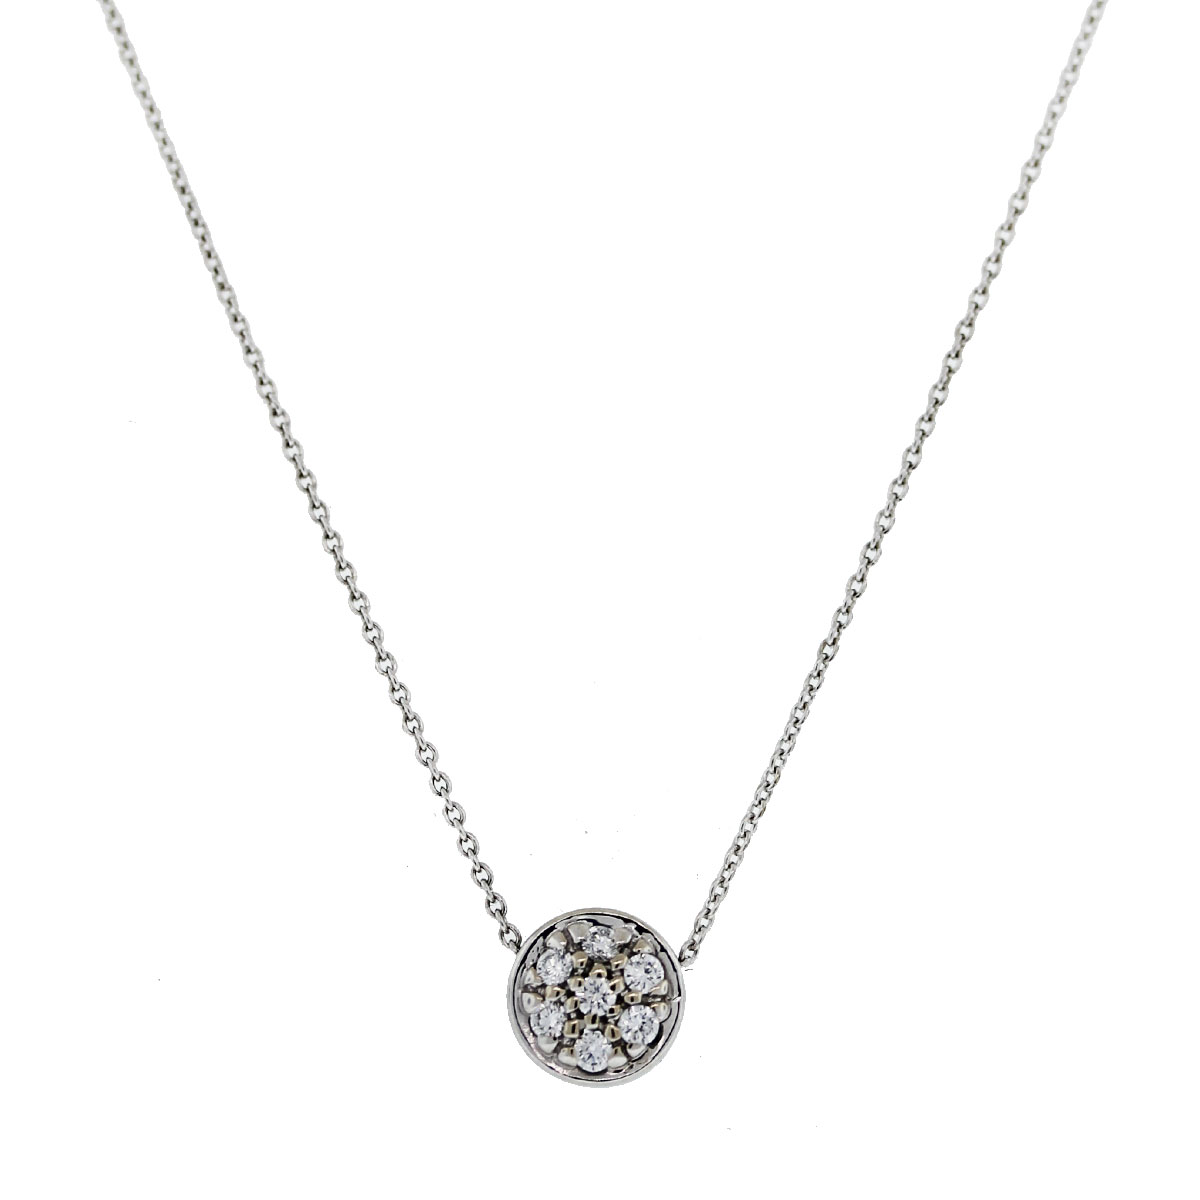 This 18kt White Gold Round Brilliant Diamond Cluster Pendant on Chain should be yours!